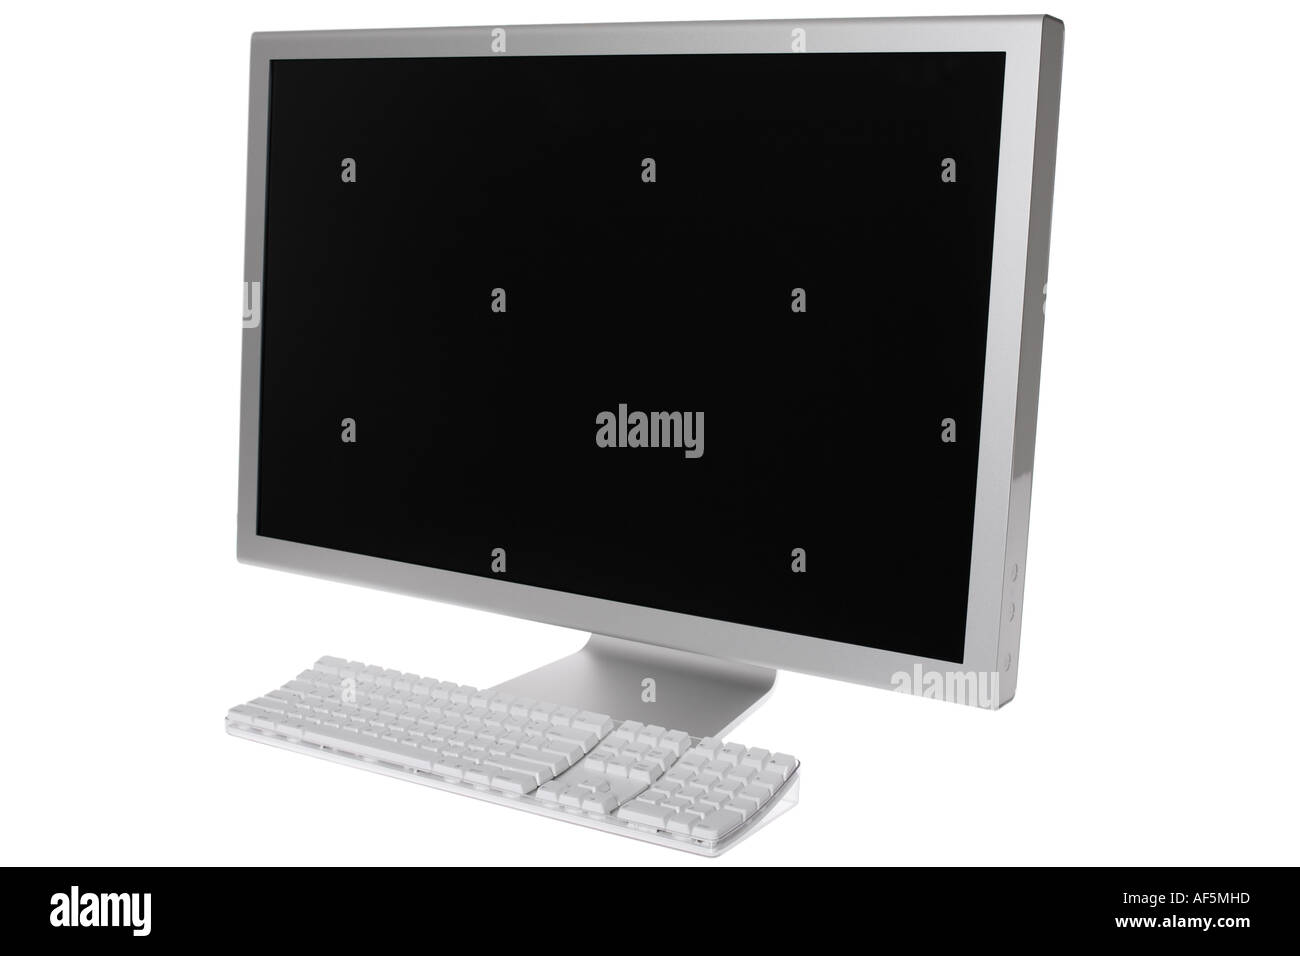 Modern widescreen computer monitor and keyboard - Stock Image